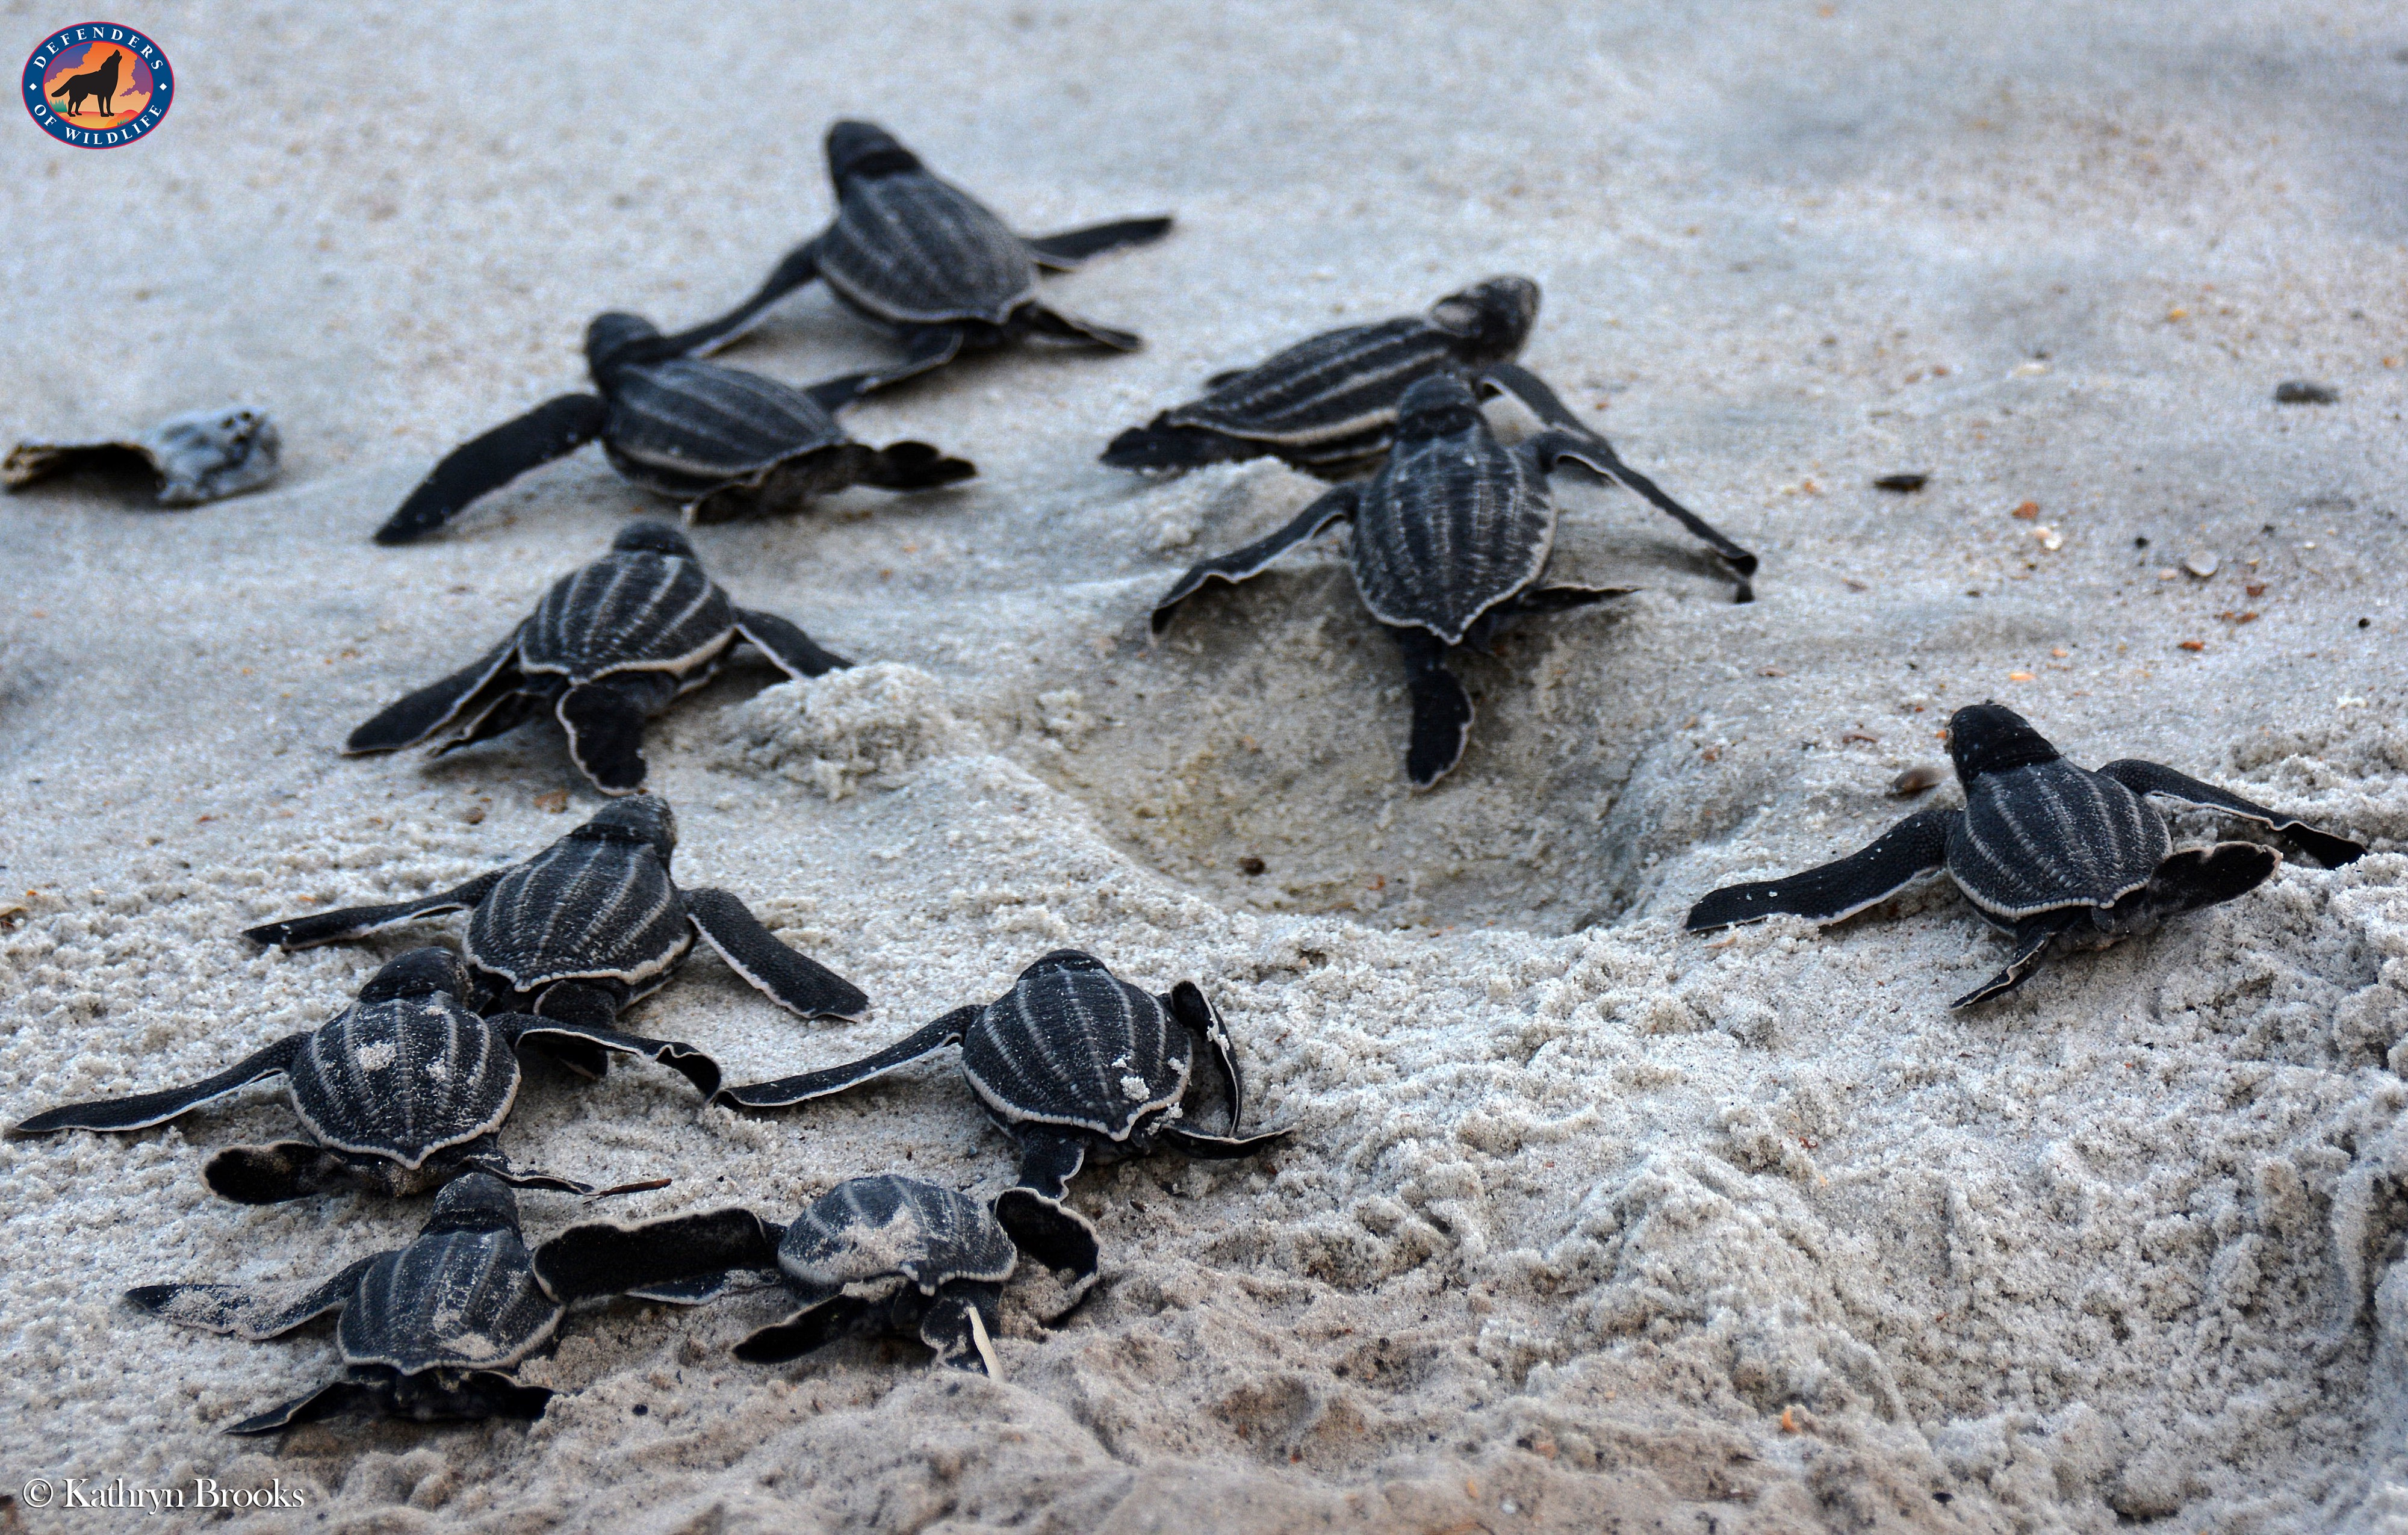 Coming Together to Protect Sea Turtles - Wild Without End